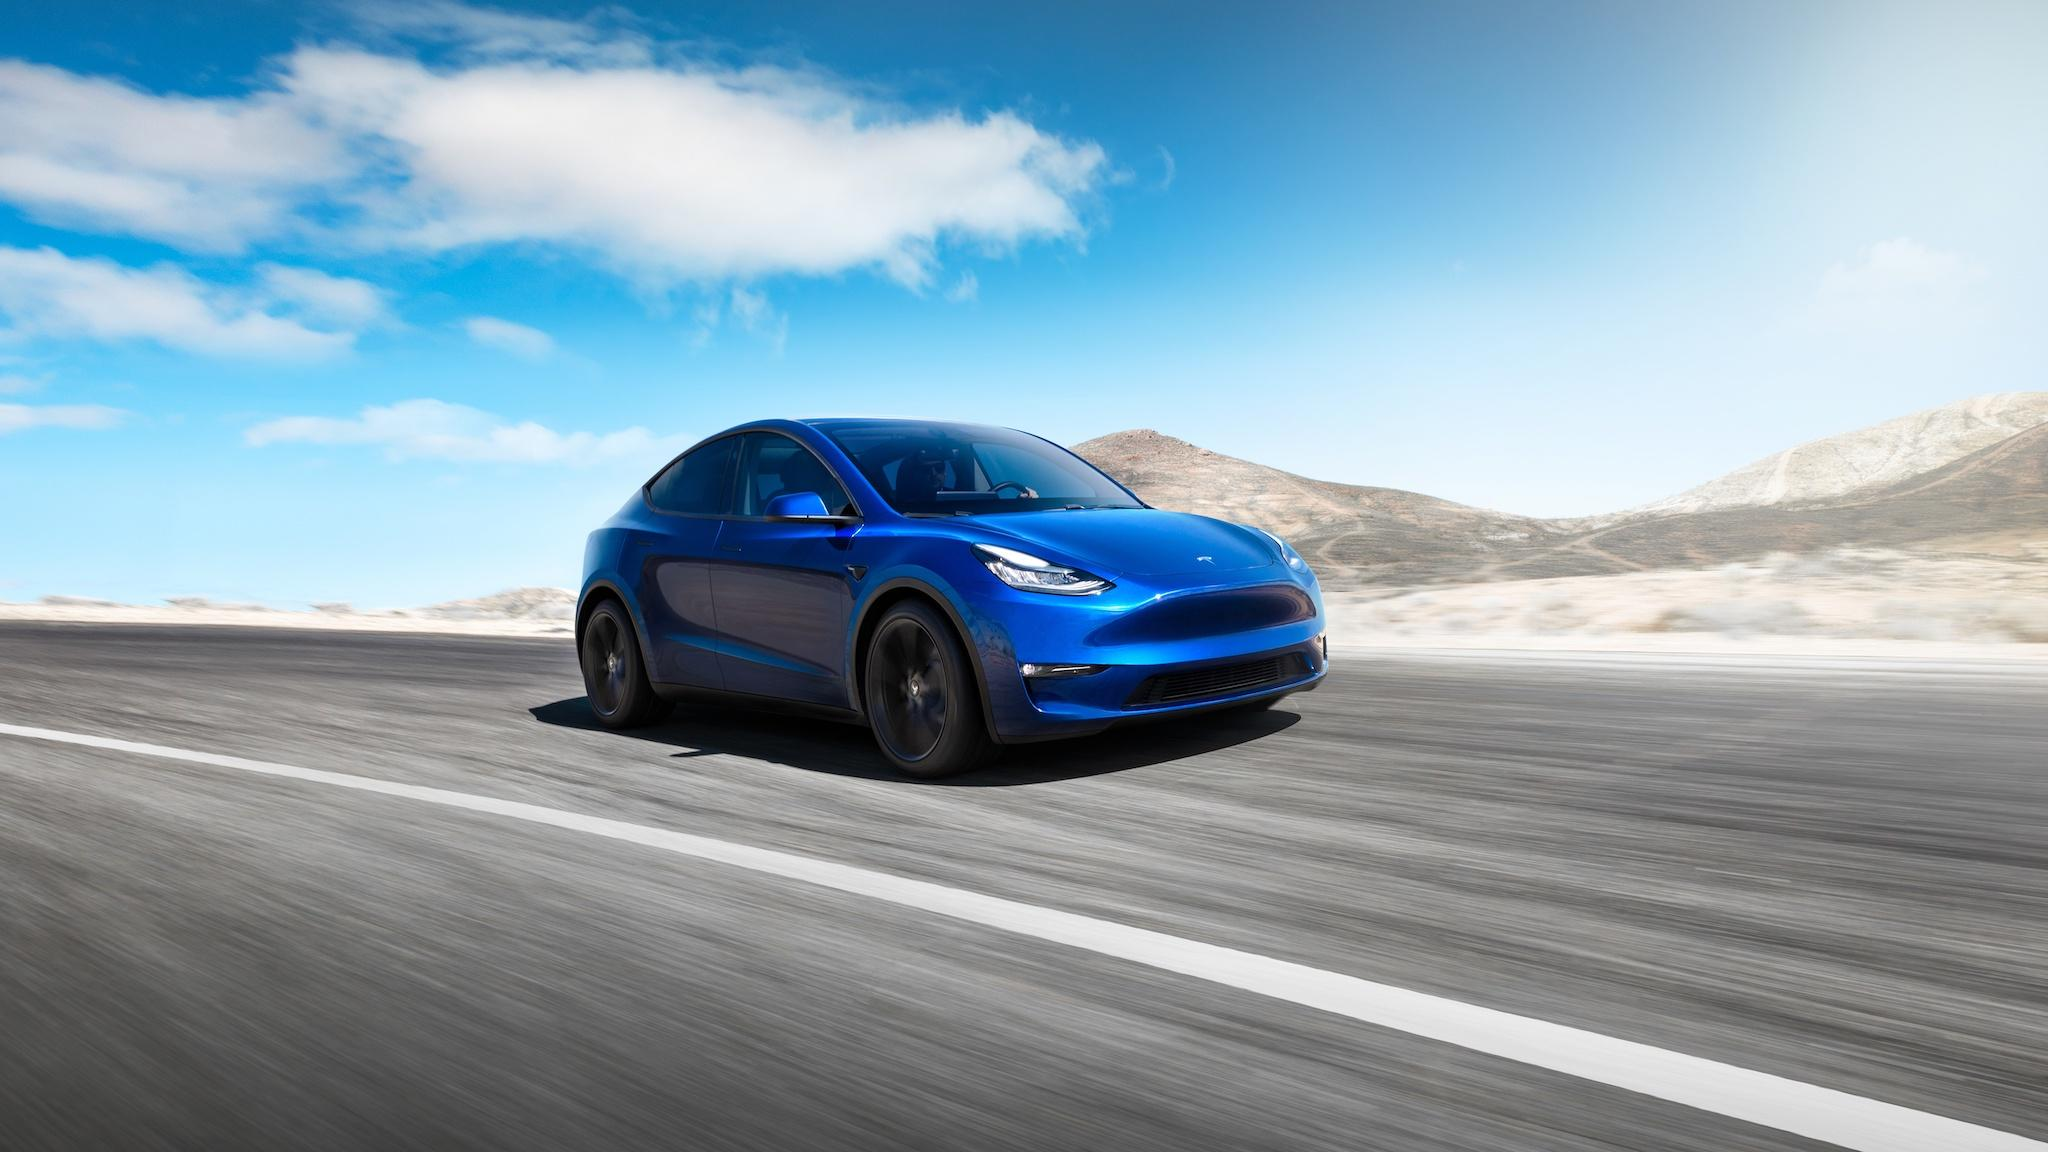 New Tesla Model Y completes joke that Elon Musk has been working on for 10 years